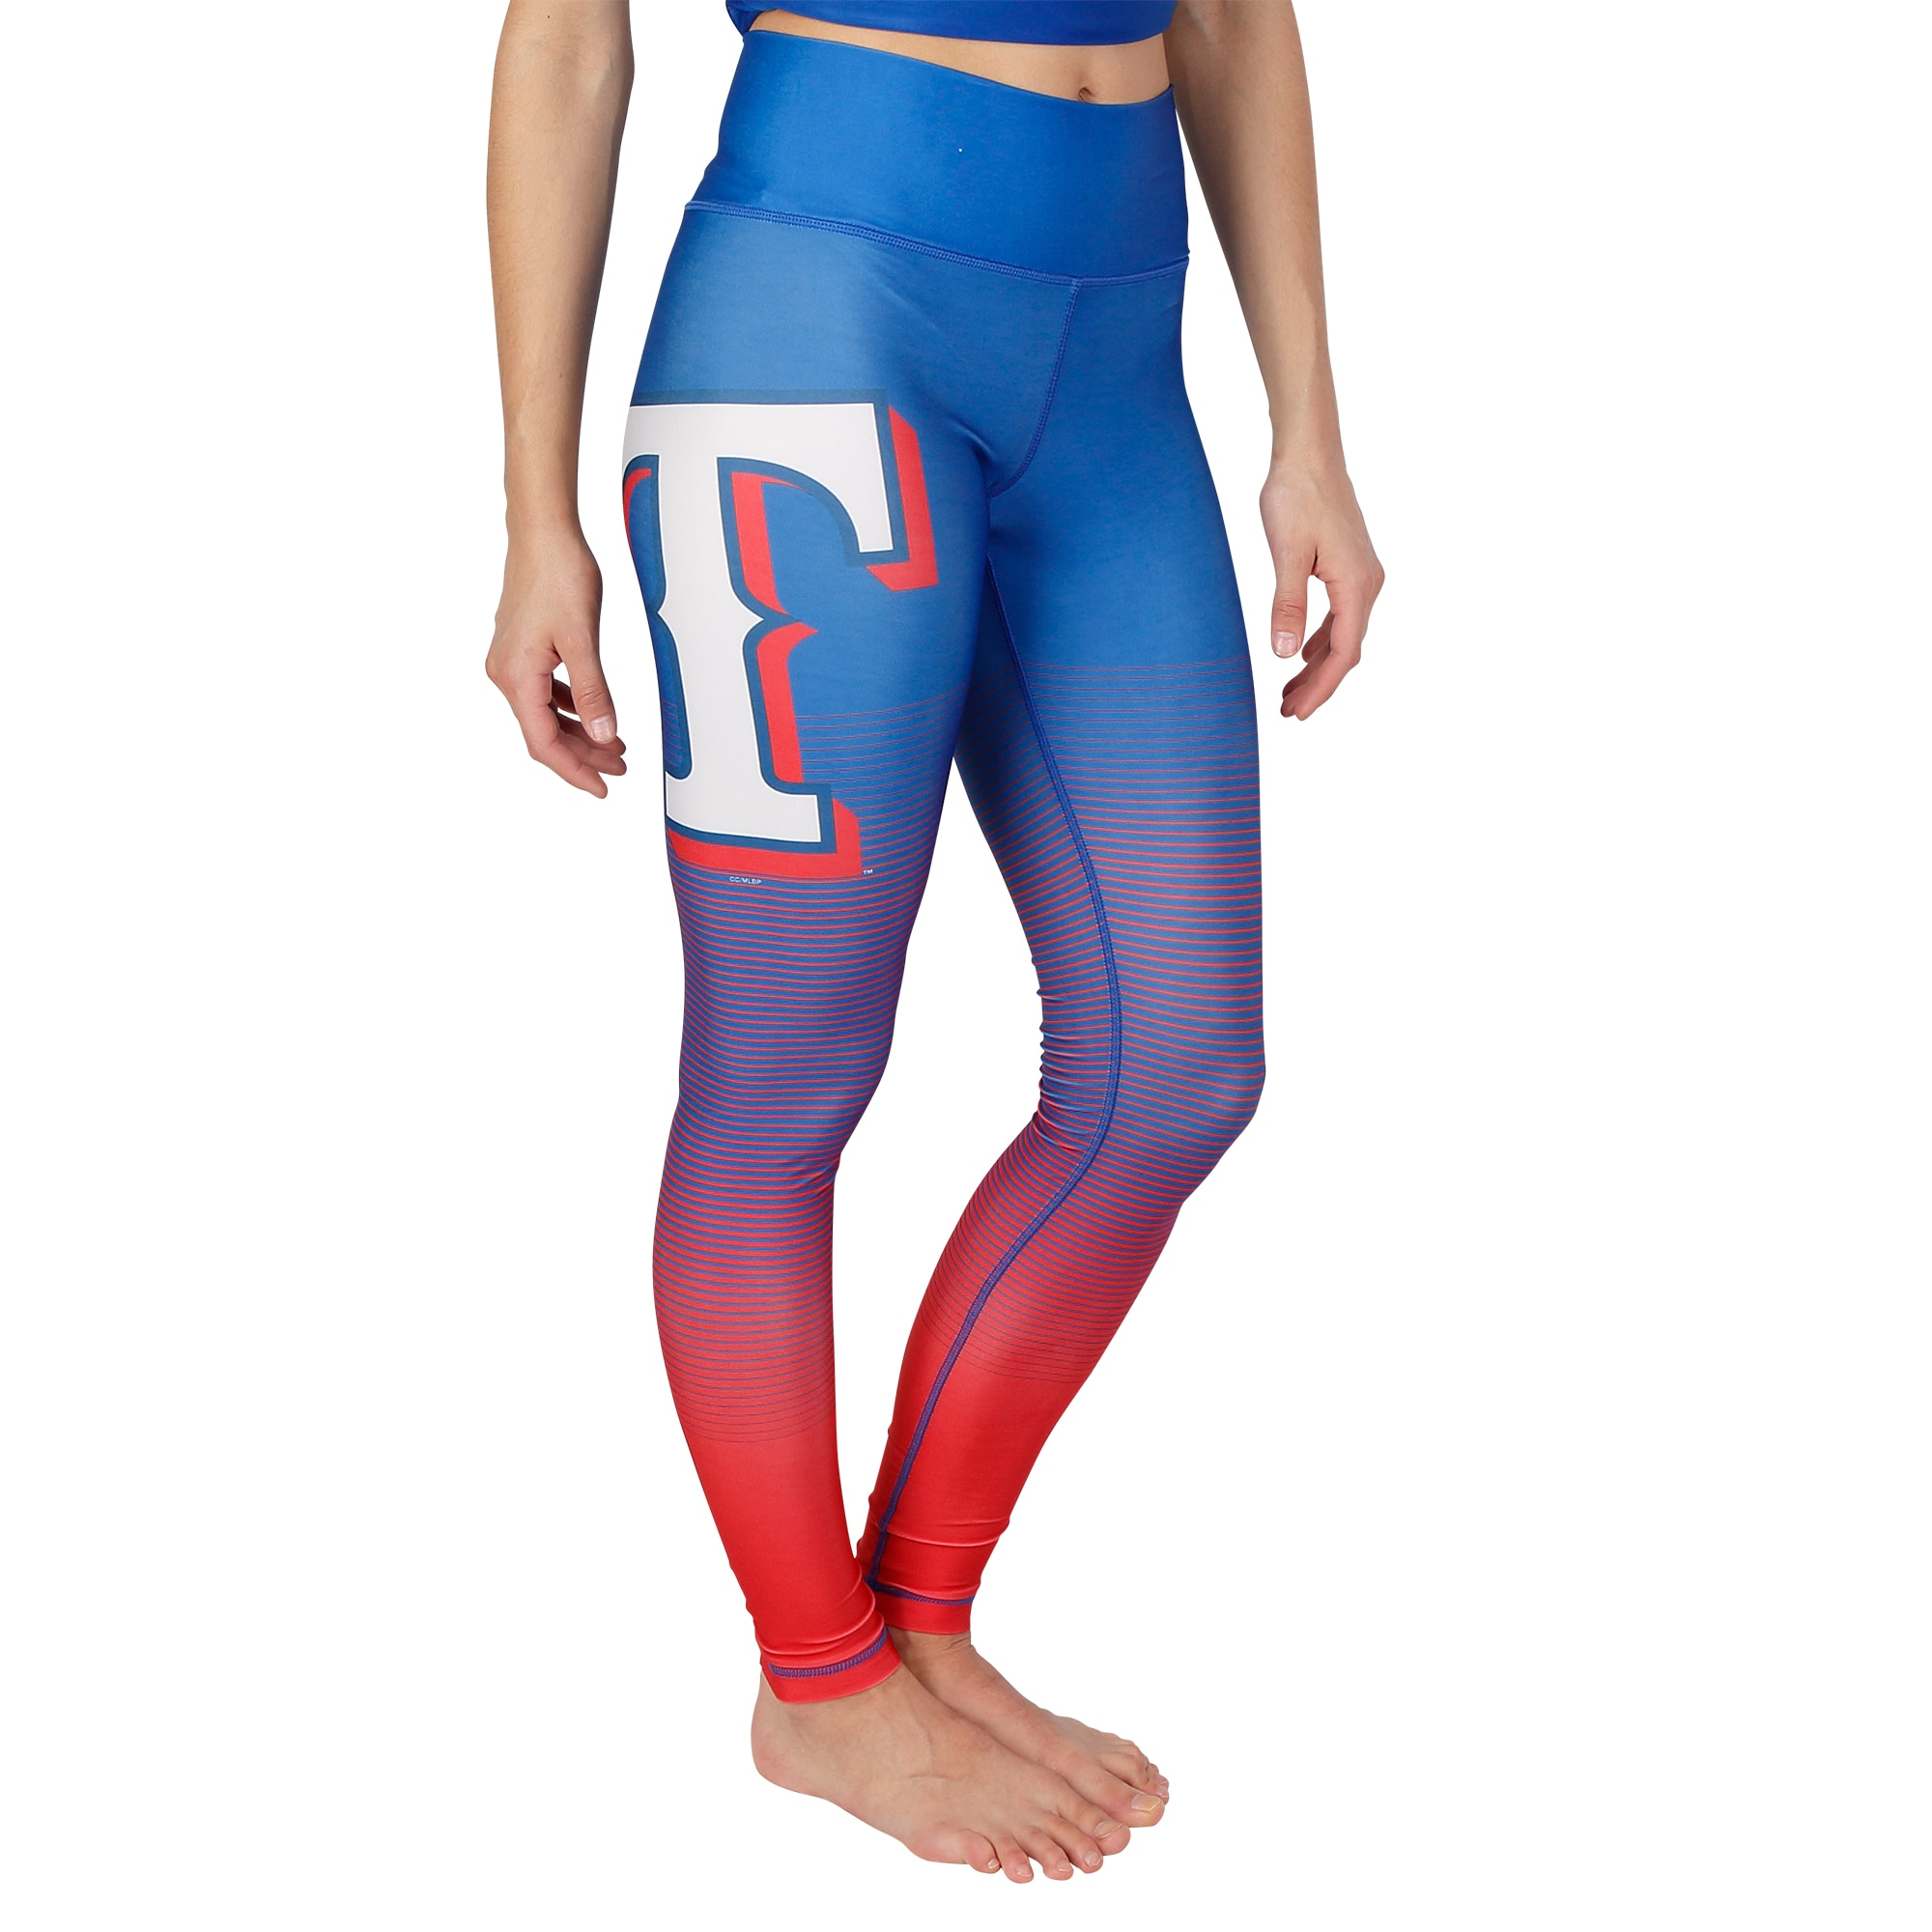 Texas Rangers Concepts Sport Women's Fringe Sublimated Leggings - Royal/Red